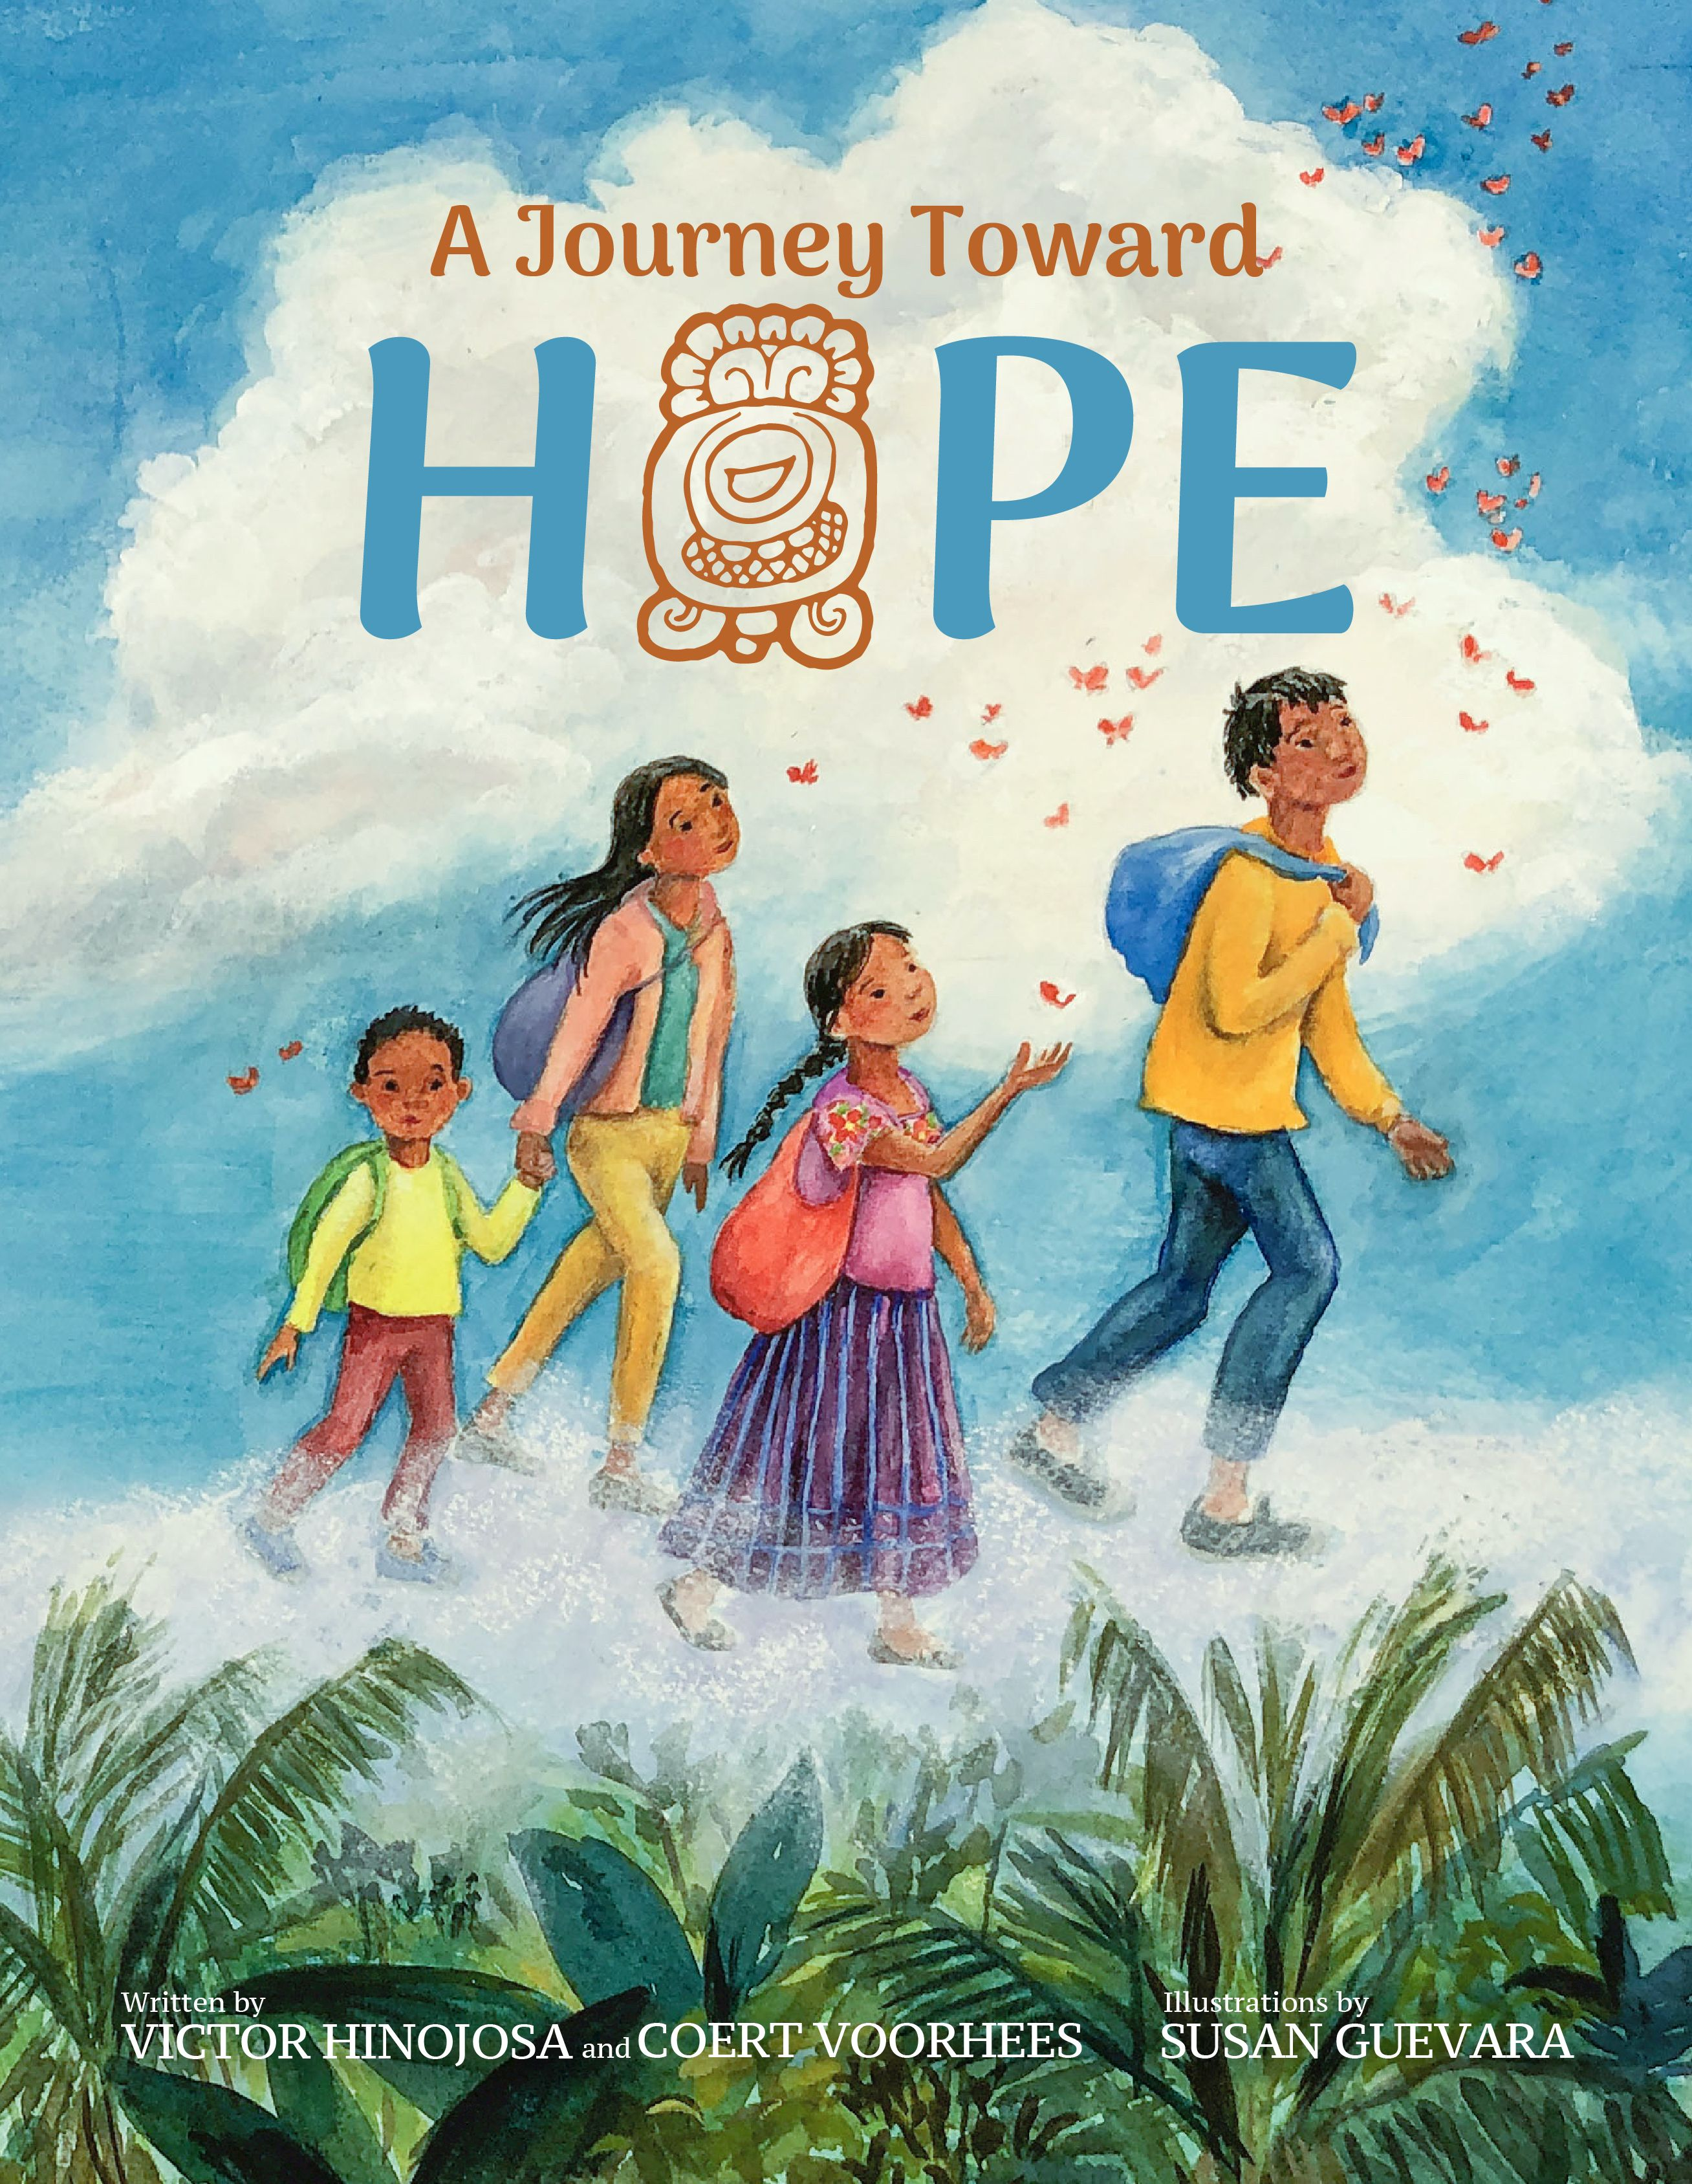 'A Journey Toward Hope' by Victor Hinojosa & Coert Voorhees. Illustrated by Susan Guevara Link: https://i.gr-assets.com/images/S/compressed.photo.goodreads.com/books/1588357002l/52466756.jpg